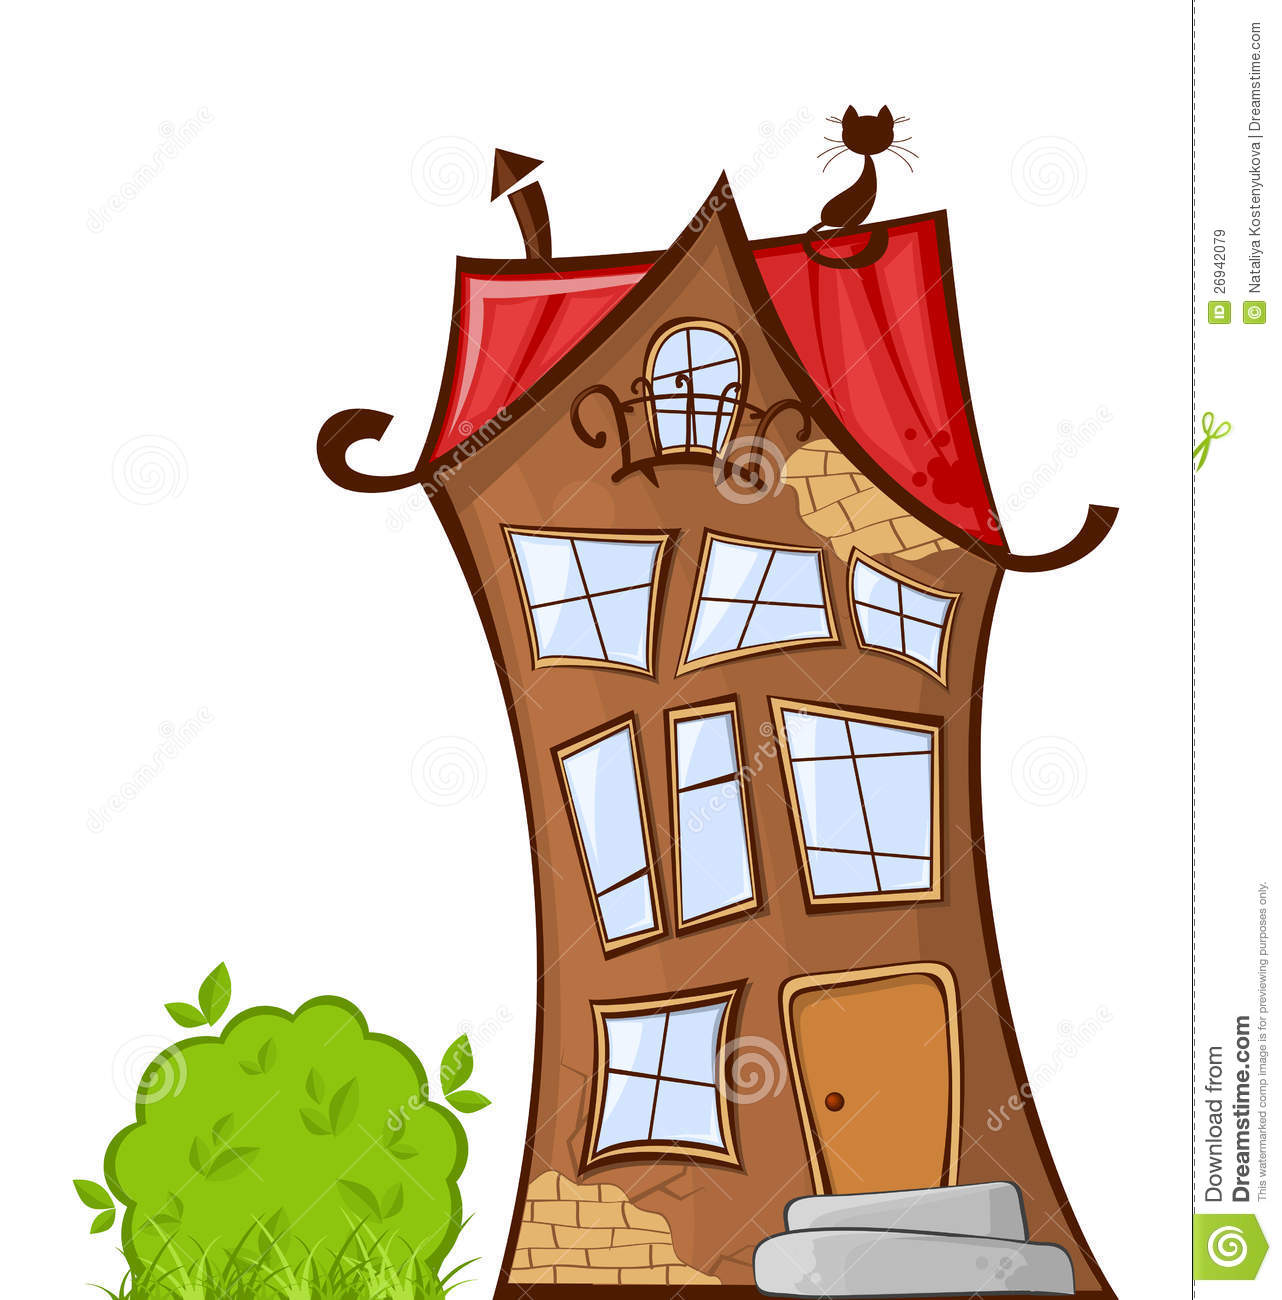 201502 besides Amazon Echo Google Home Apple Homekit Home Tech furthermore Chloe Hair For Male And Children as well 289074869804174396 moreover Cube Houses Kubuswoningen In Rotterdam. on cute houses